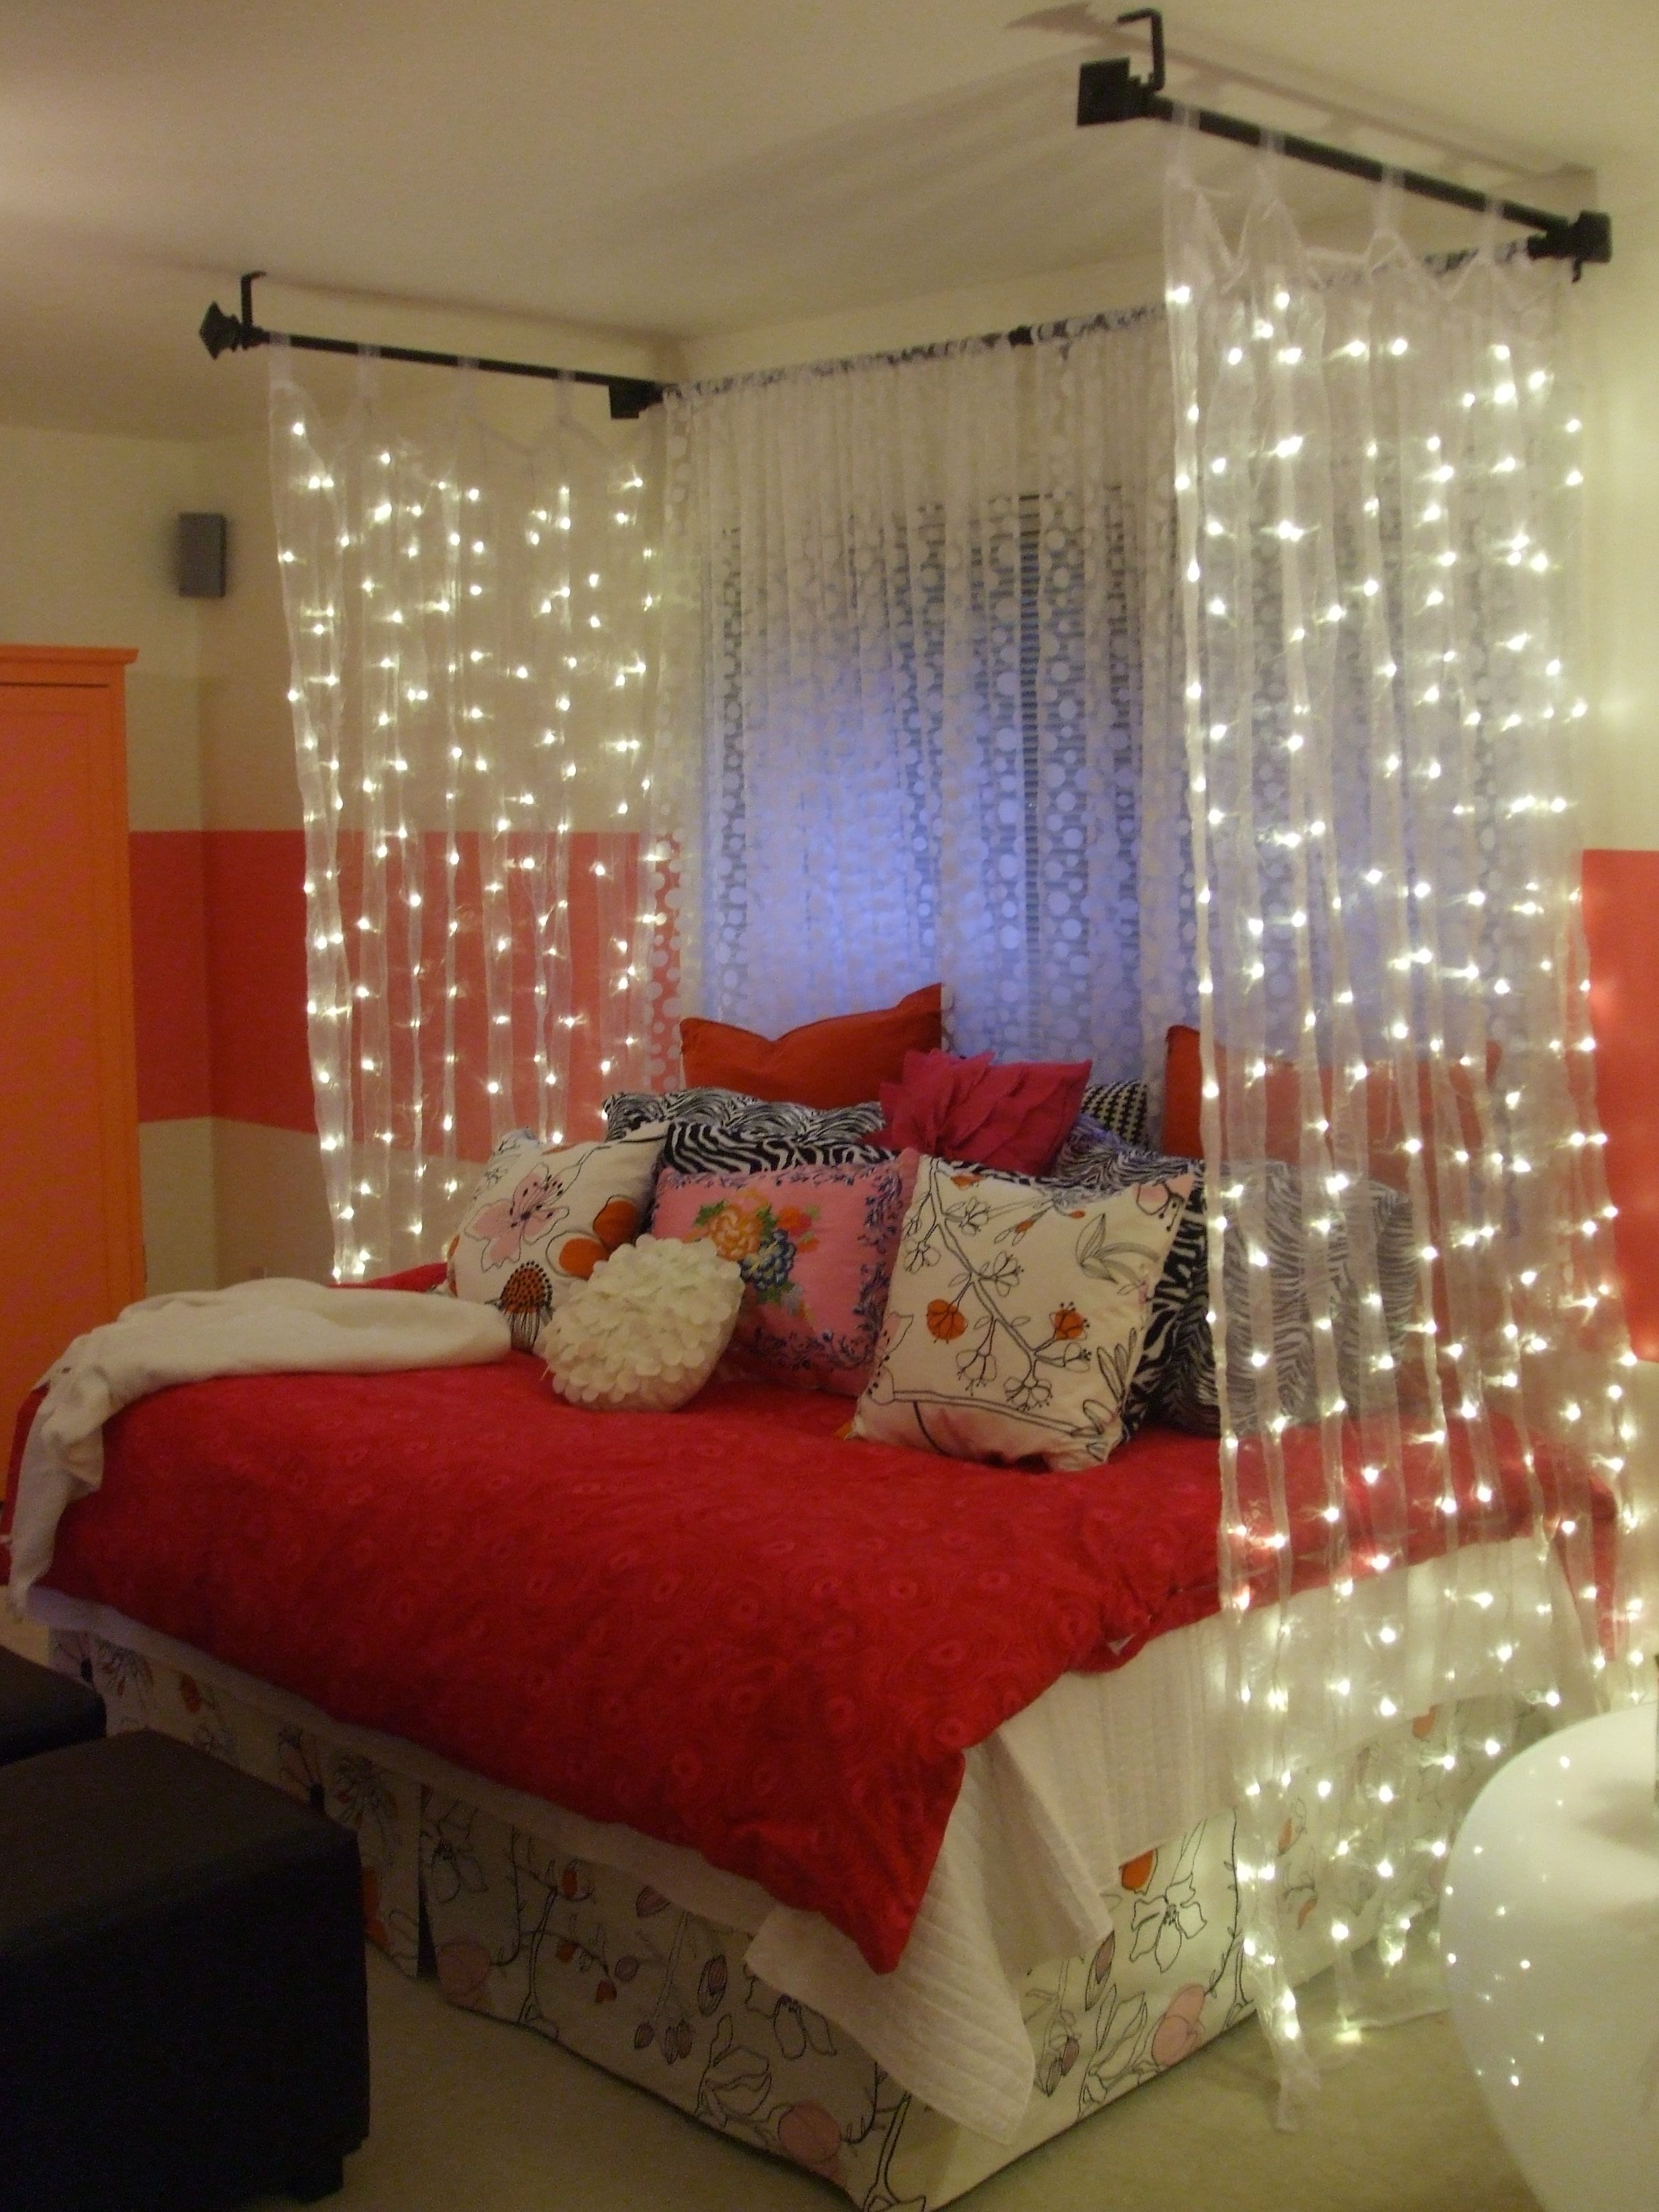 Bed Canopy Diy 20 Magical Diy Bed Canopy Ideas Will Make You Sleep Romantic